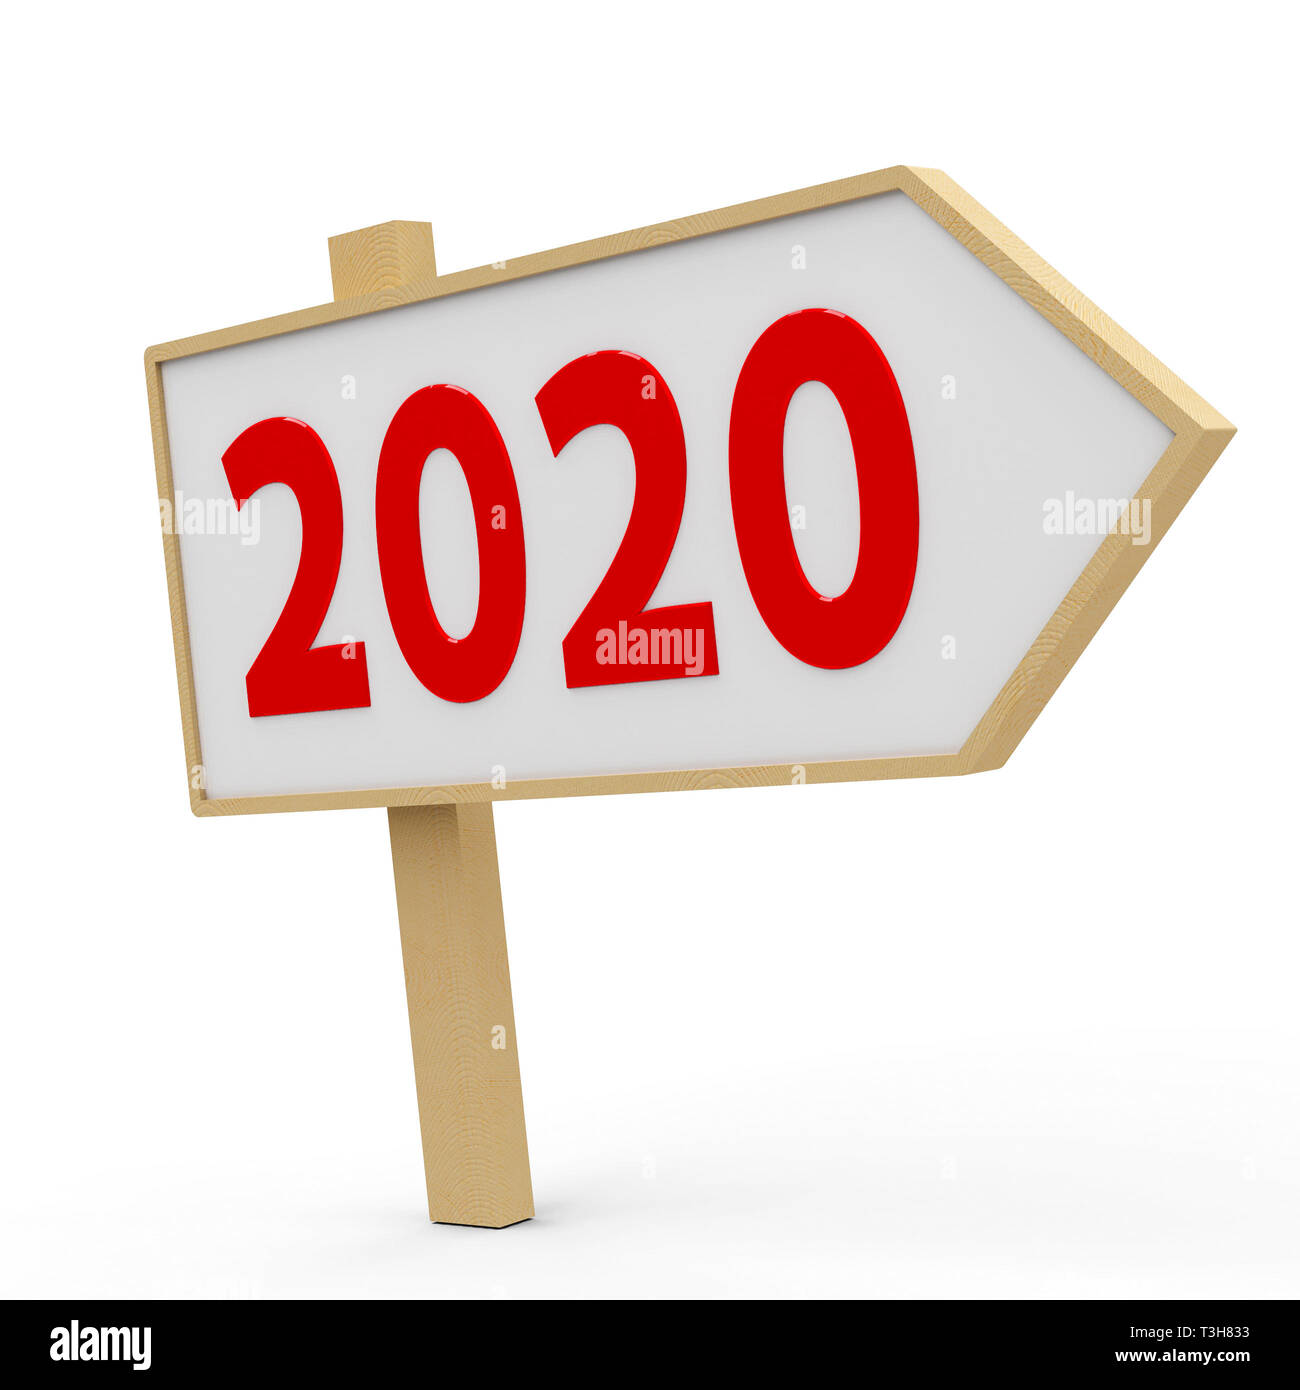 2020 white banner on white background, represents the new year 2020, three-dimensional rendering, 3D illustration Stock Photo